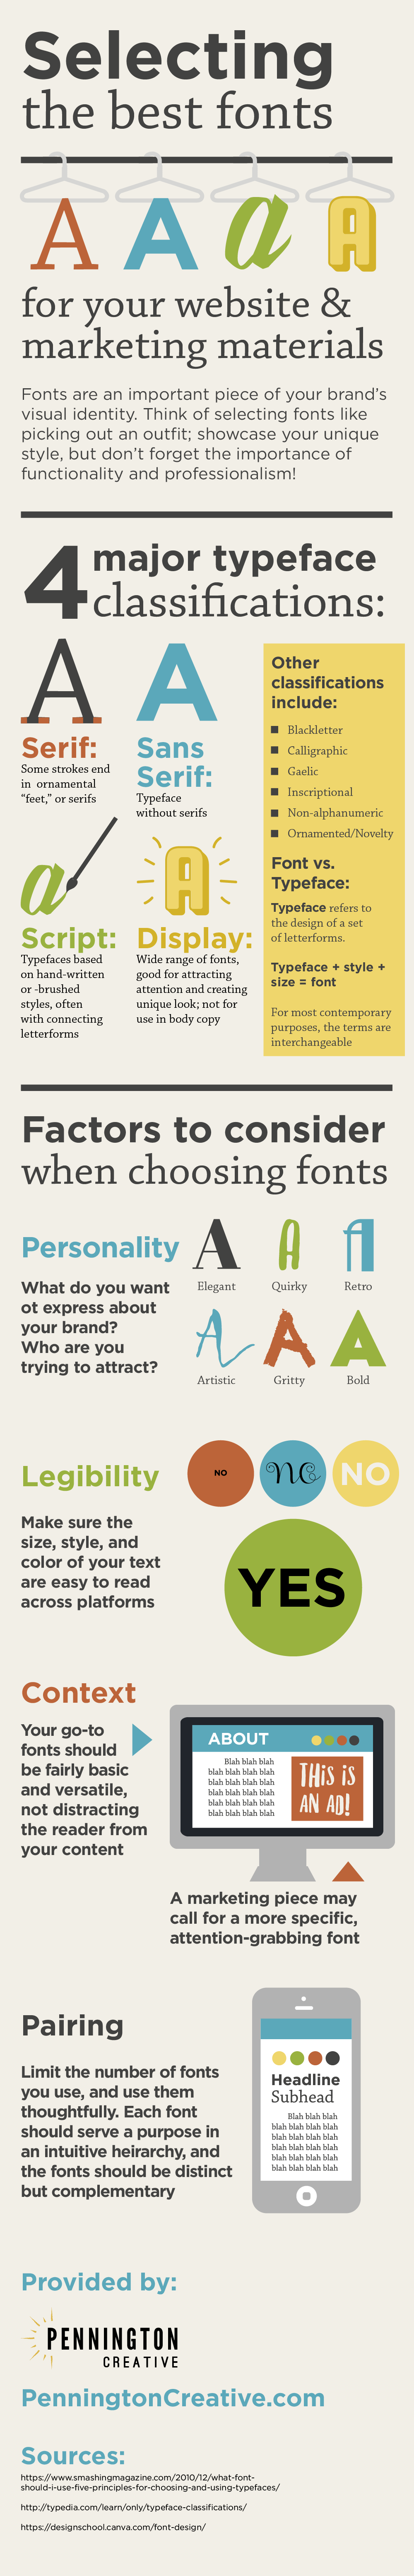 Selecting the Best Fonts for Your Website and Marketing Materials - #infographic